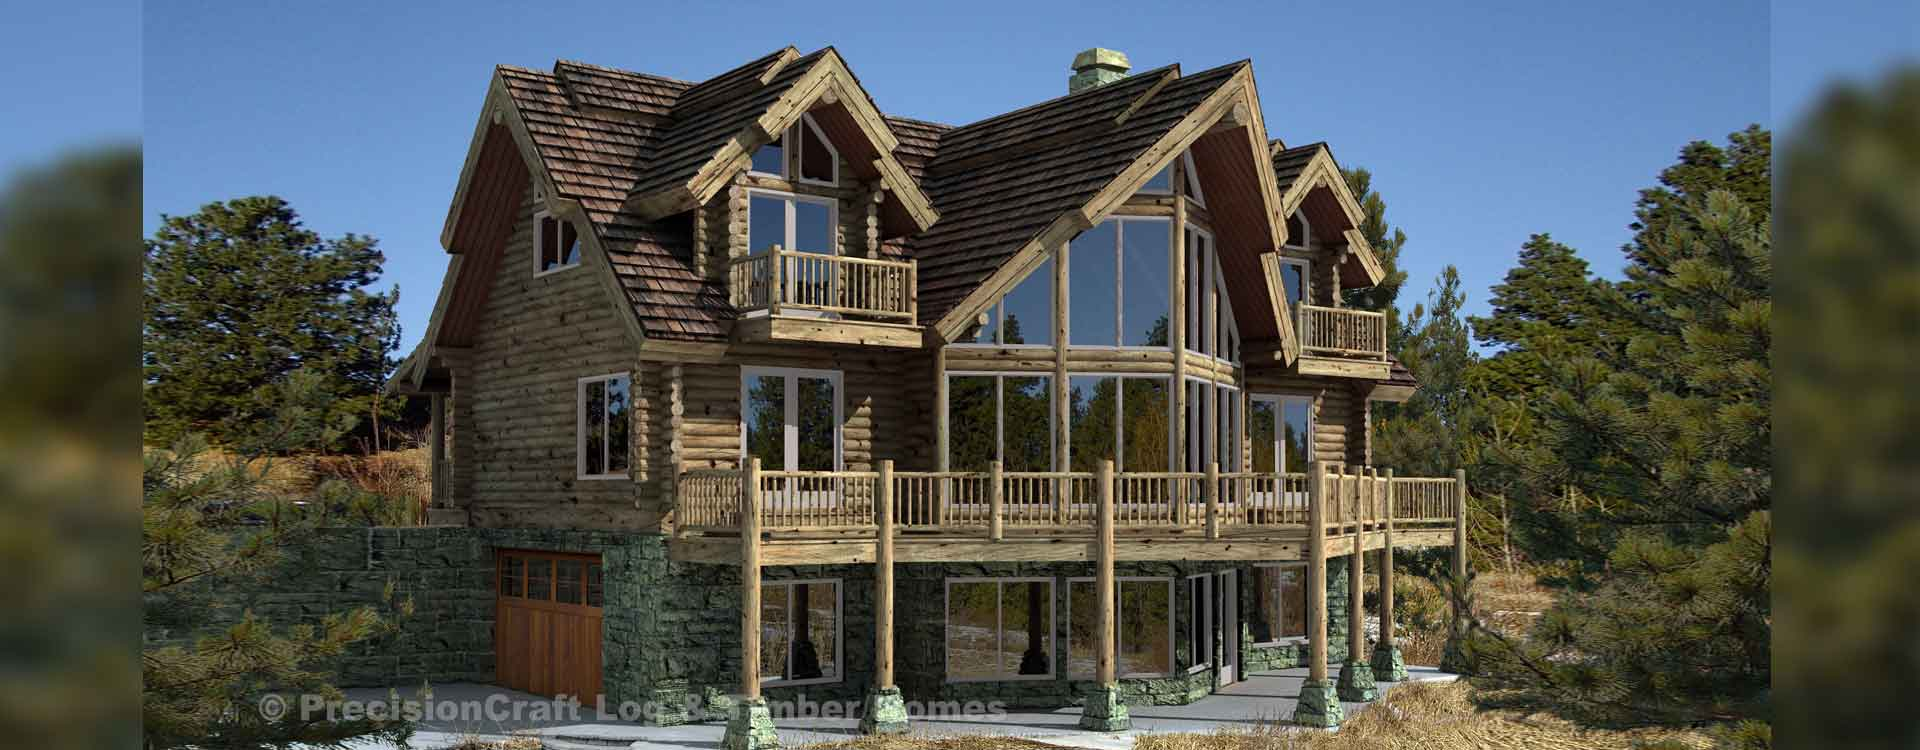 Timber Frame and Log Home Floor Plans - By PrecisionCraft on unique home designs guardian, unique home designs window guards, unique architecture homes,